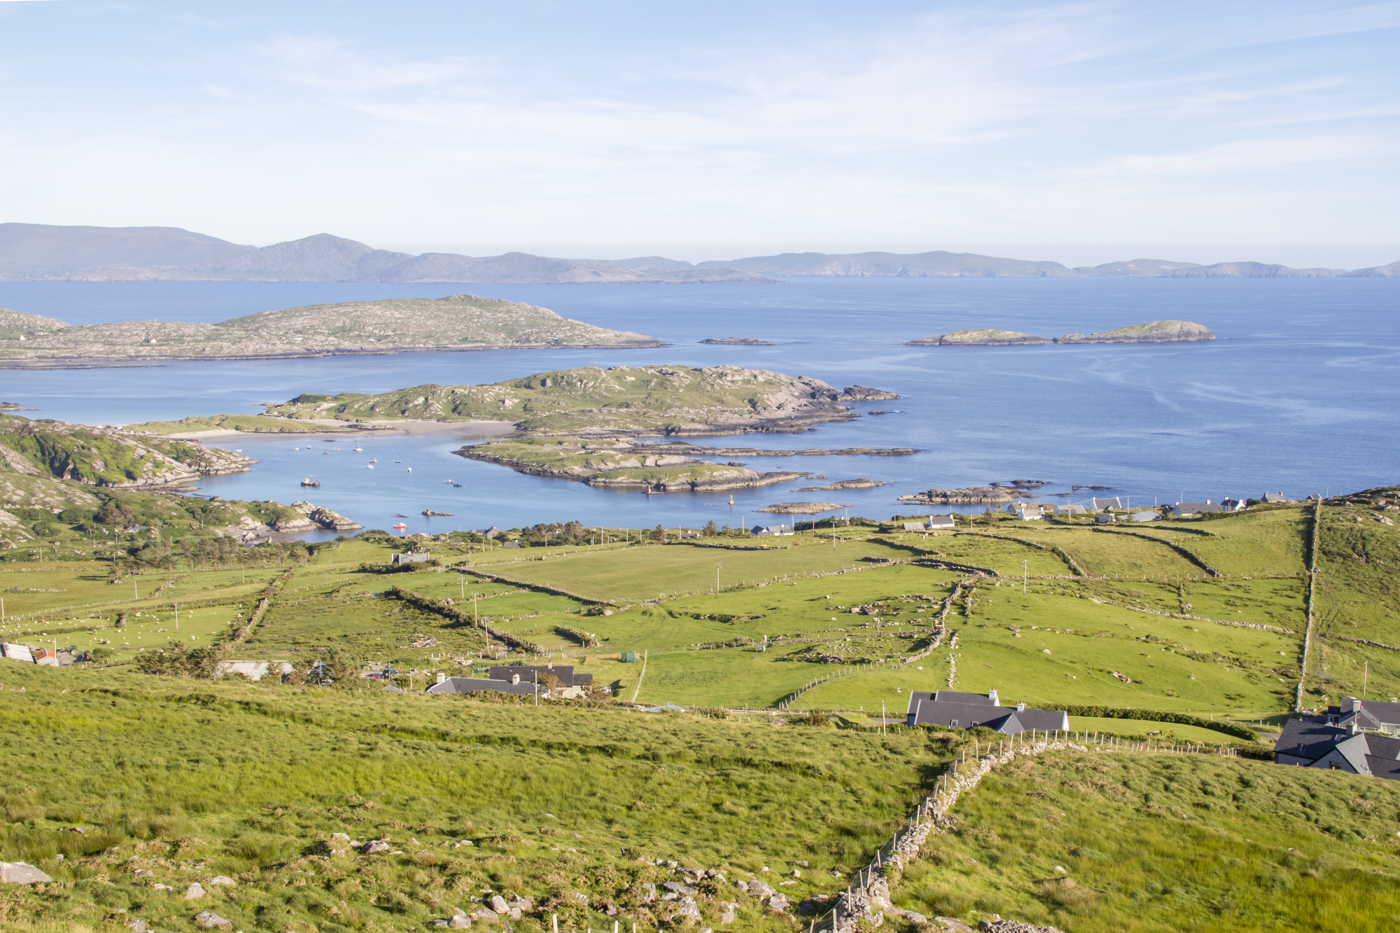 Paysage Ring du Kerry